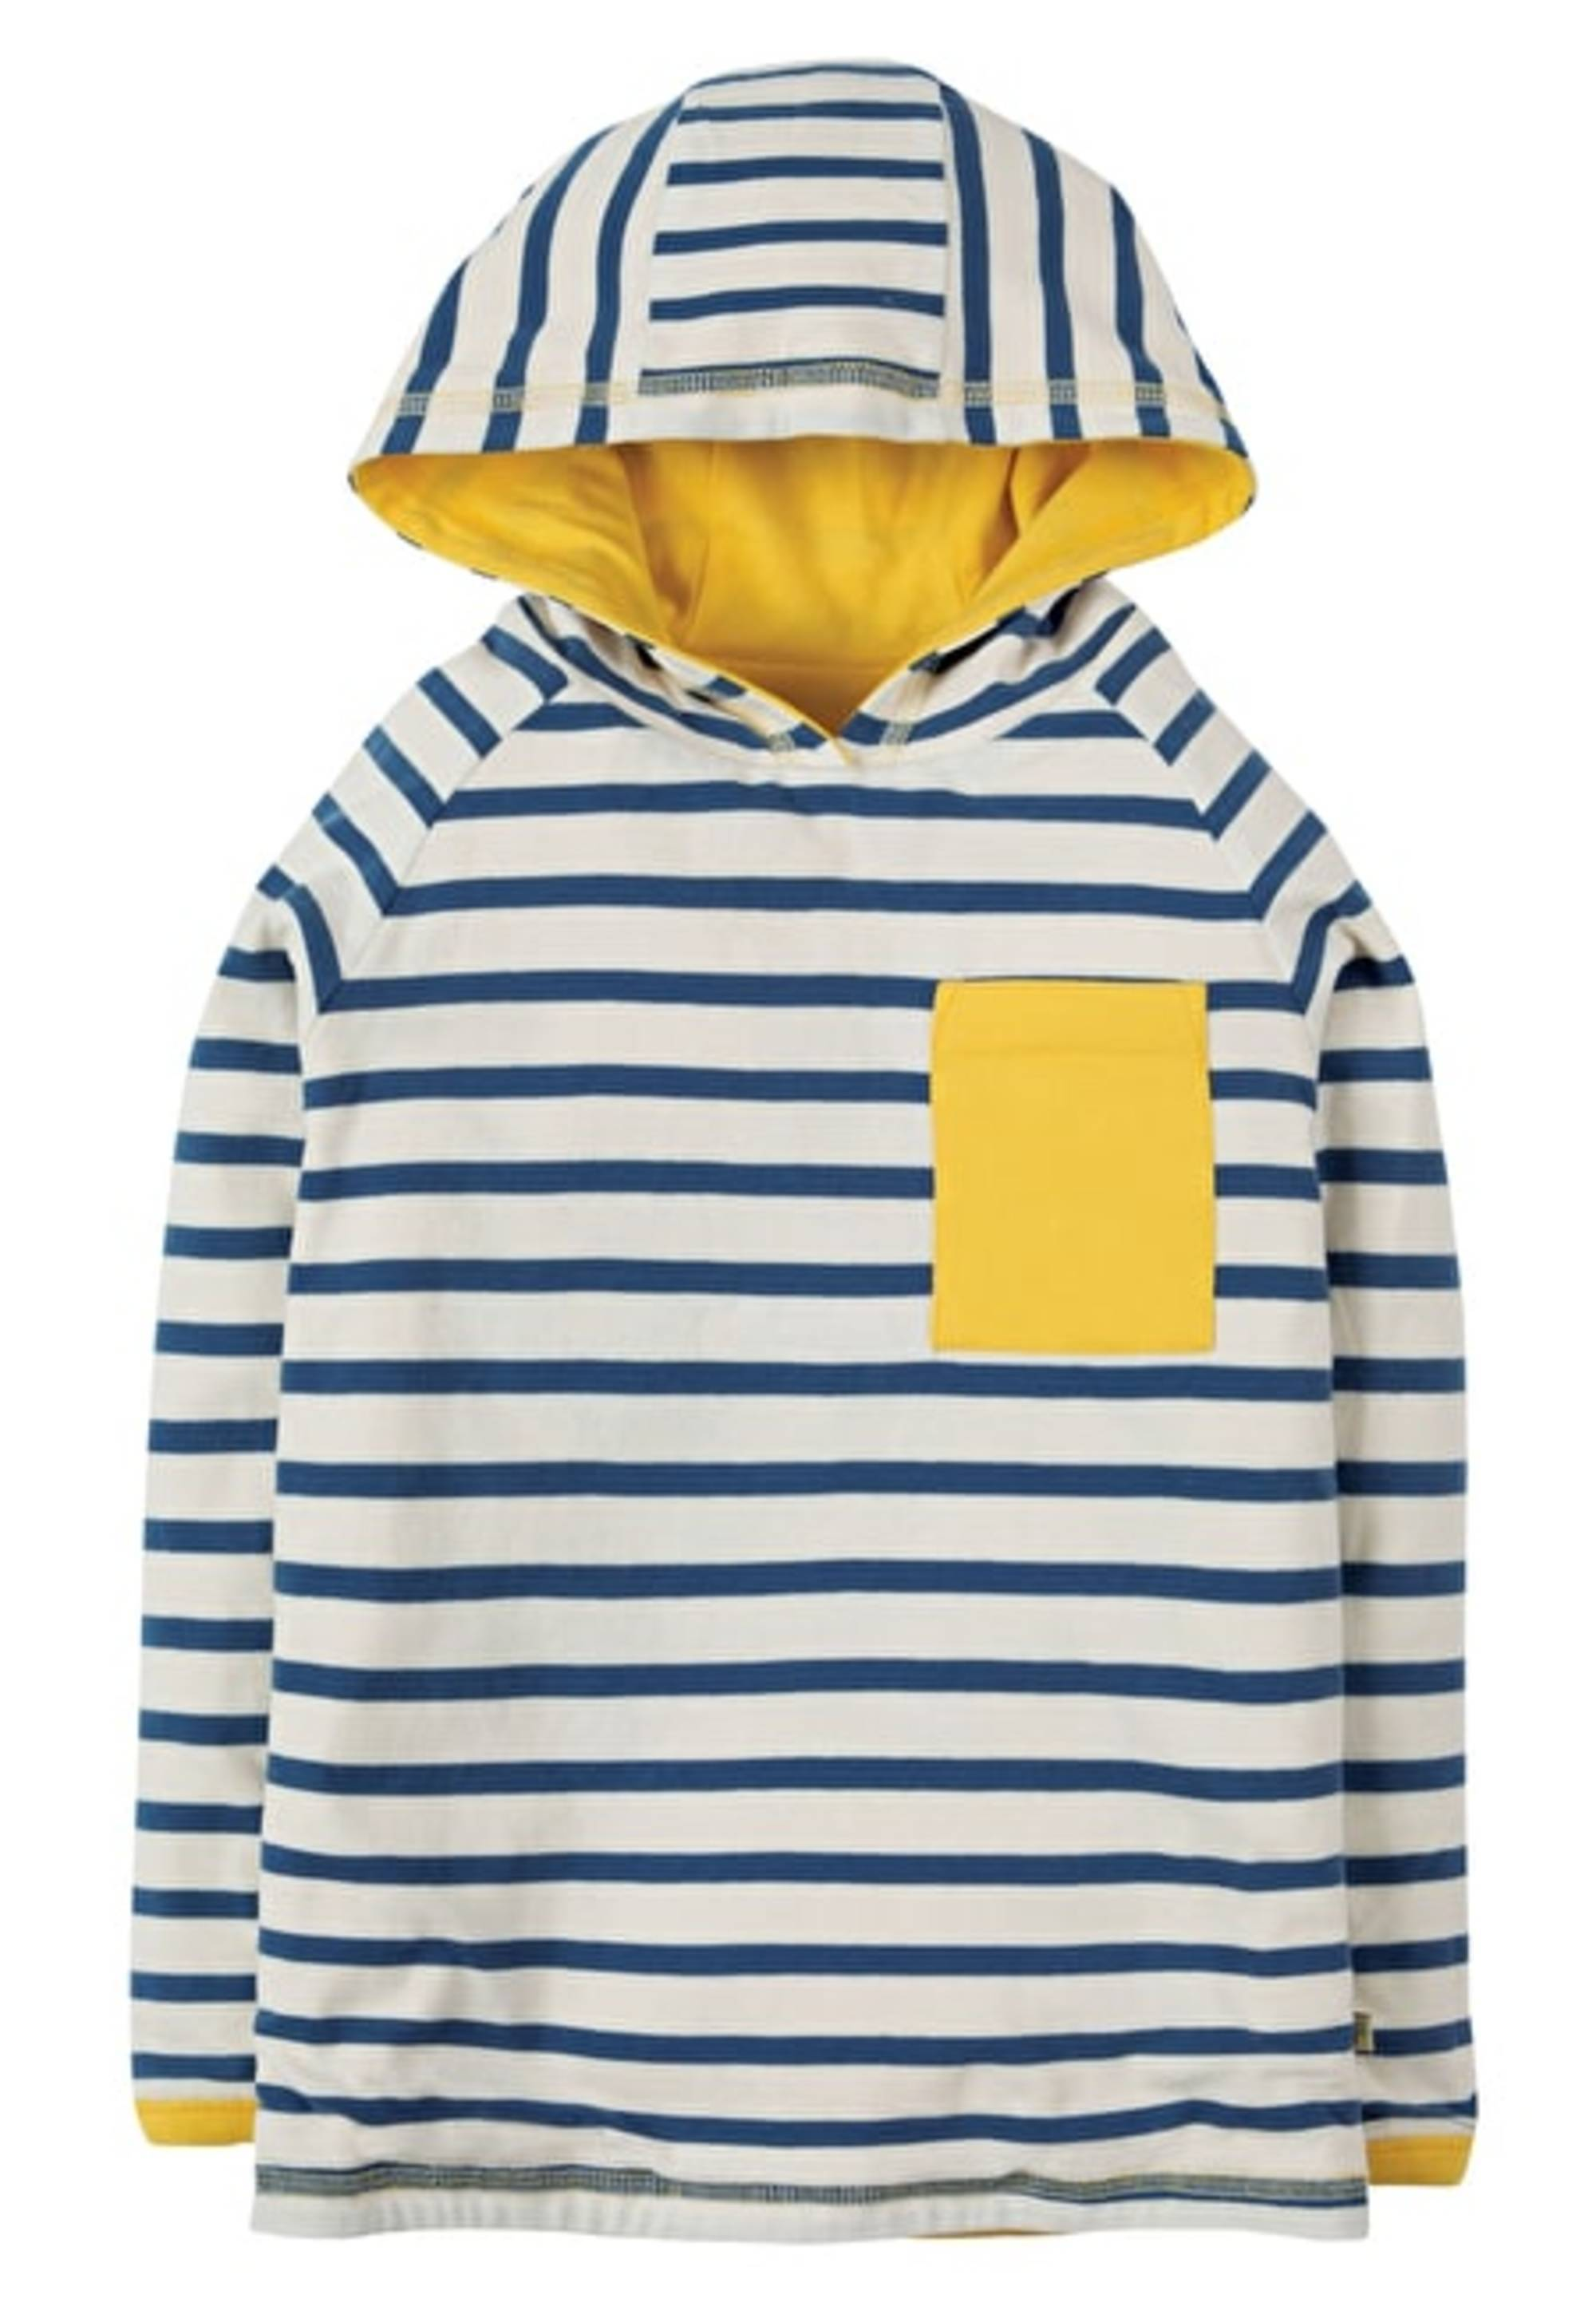 0265d94be STORK Organic Baby Boutique - Boys Clothing